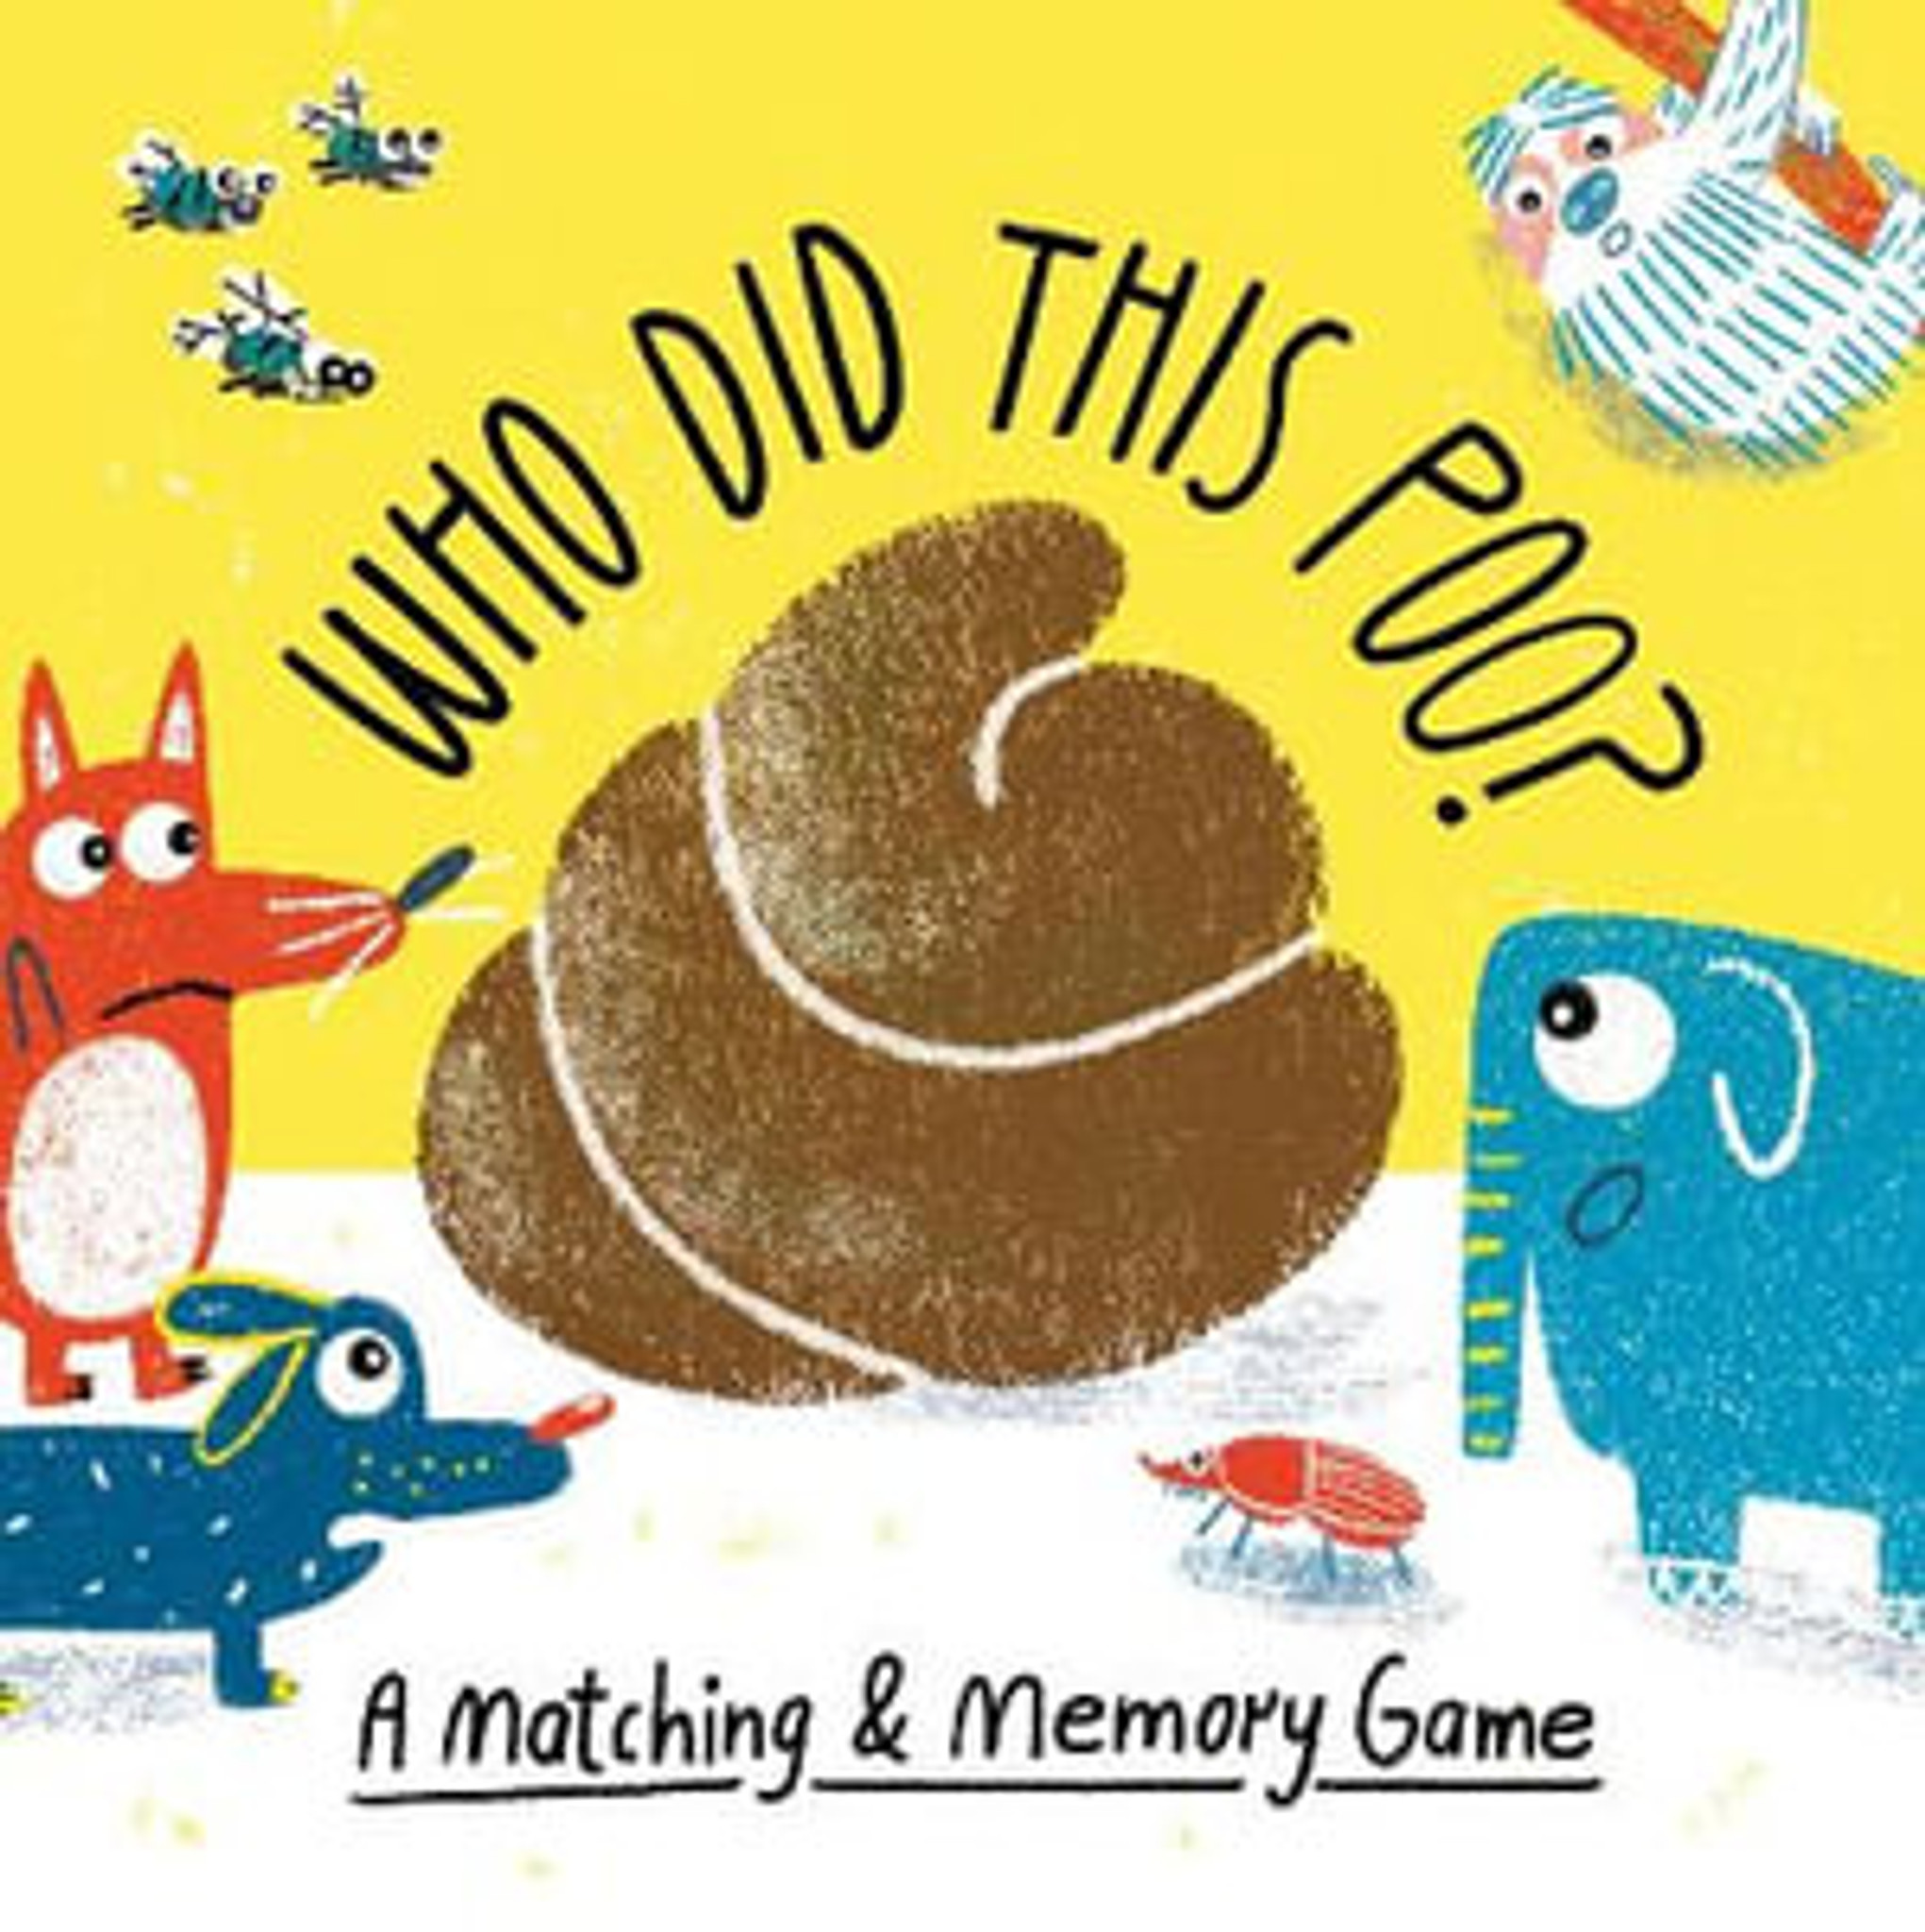 In this fun and slightly irreverent game kids can match 27 animals to their droppings while satisfying their endless fascination for poo. Also comes with a booklet full of fun poo facts!